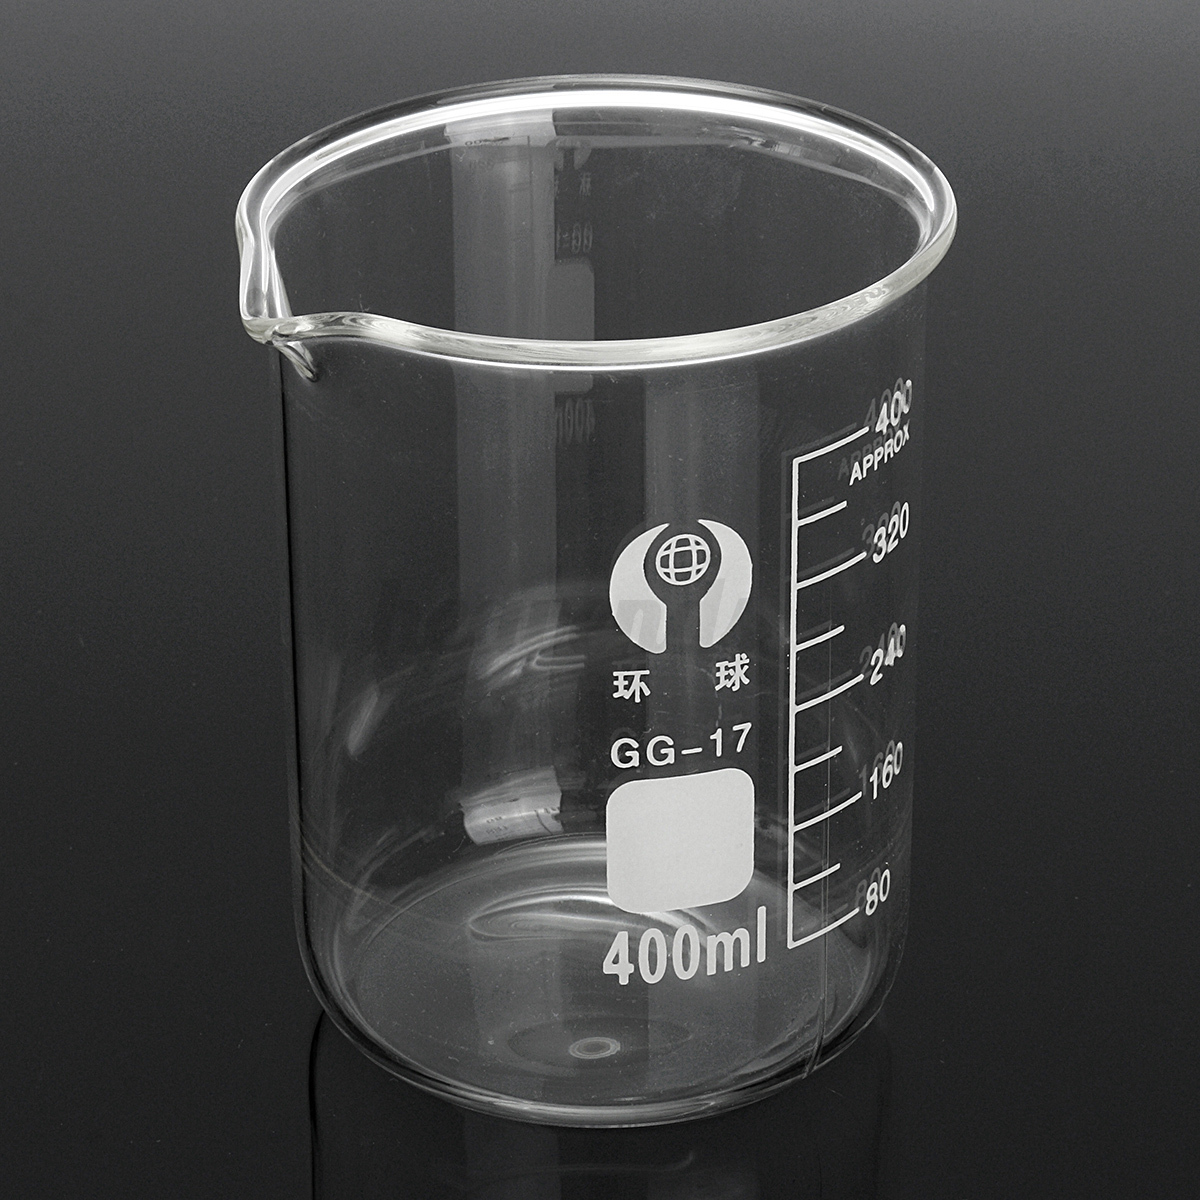 Becherglas Kaufen 5ml 600ml 2 7x Becherglas Set Messbecher Glas Labor